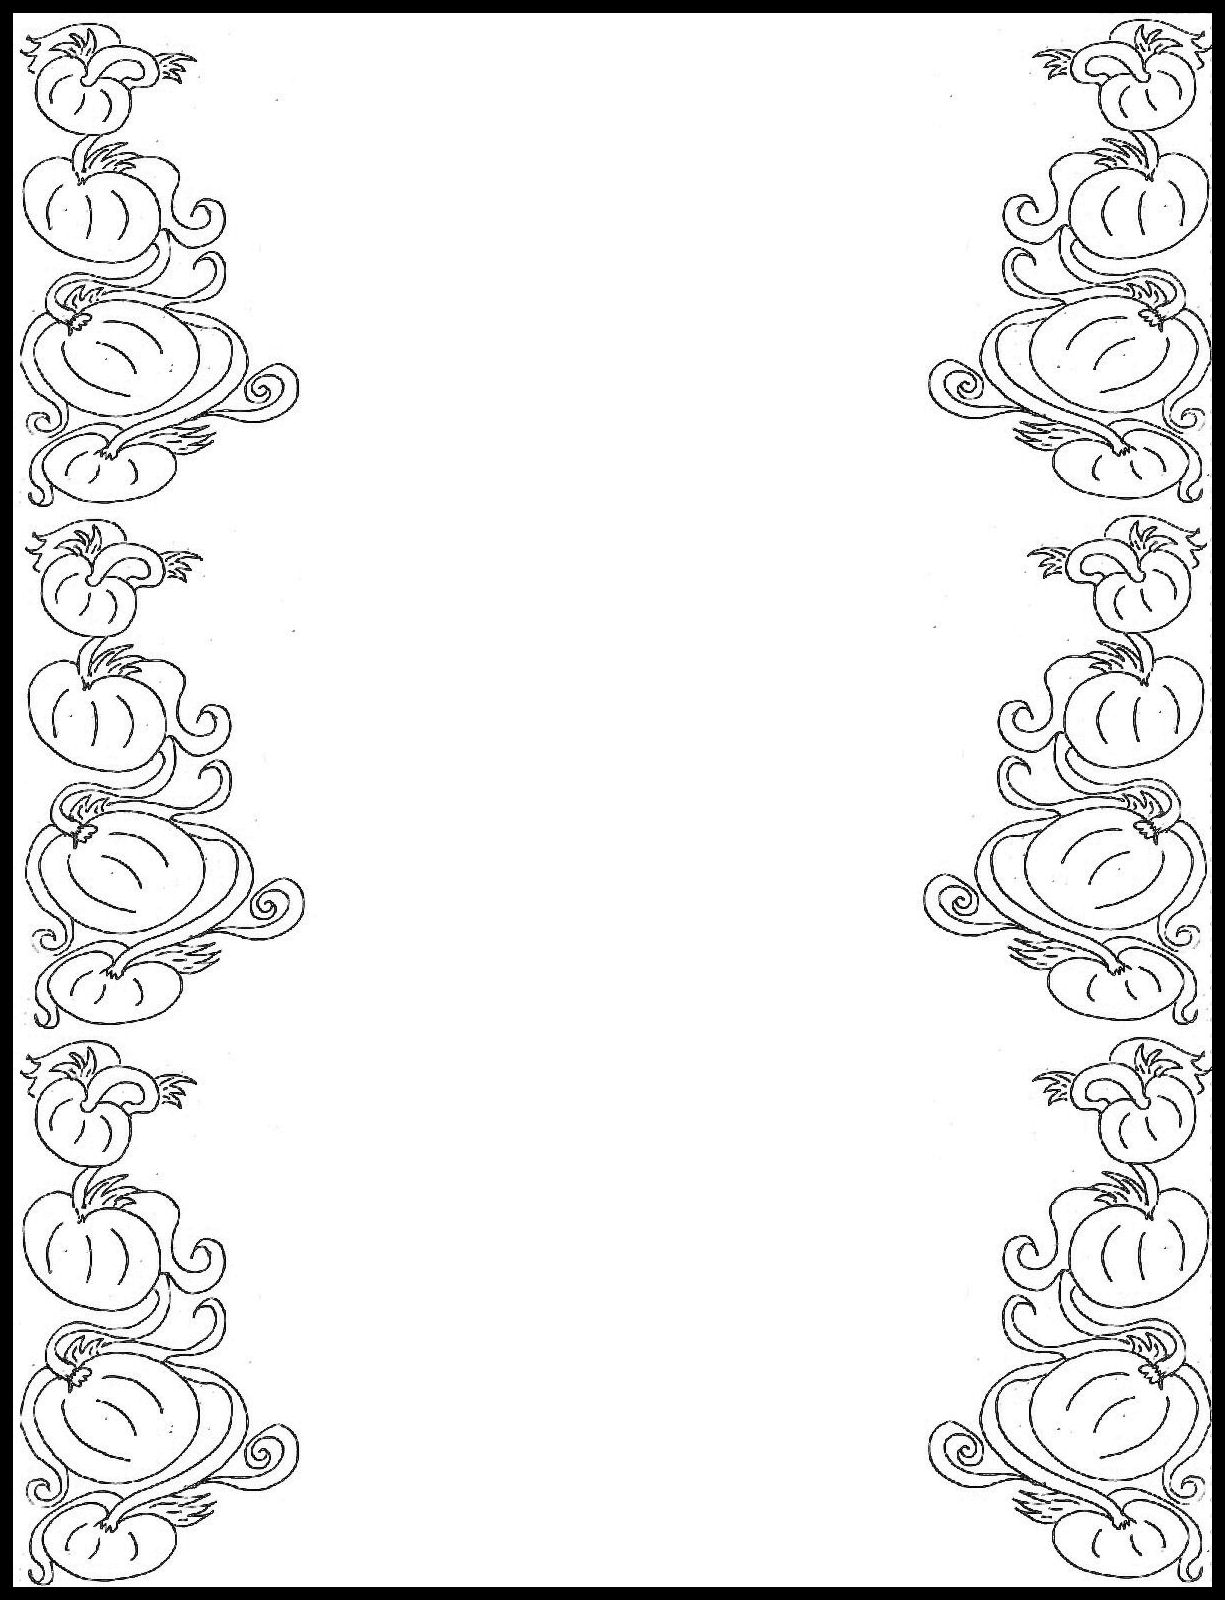 Blank Bos Pages On Clipart Library Book Of Shadows Boss And